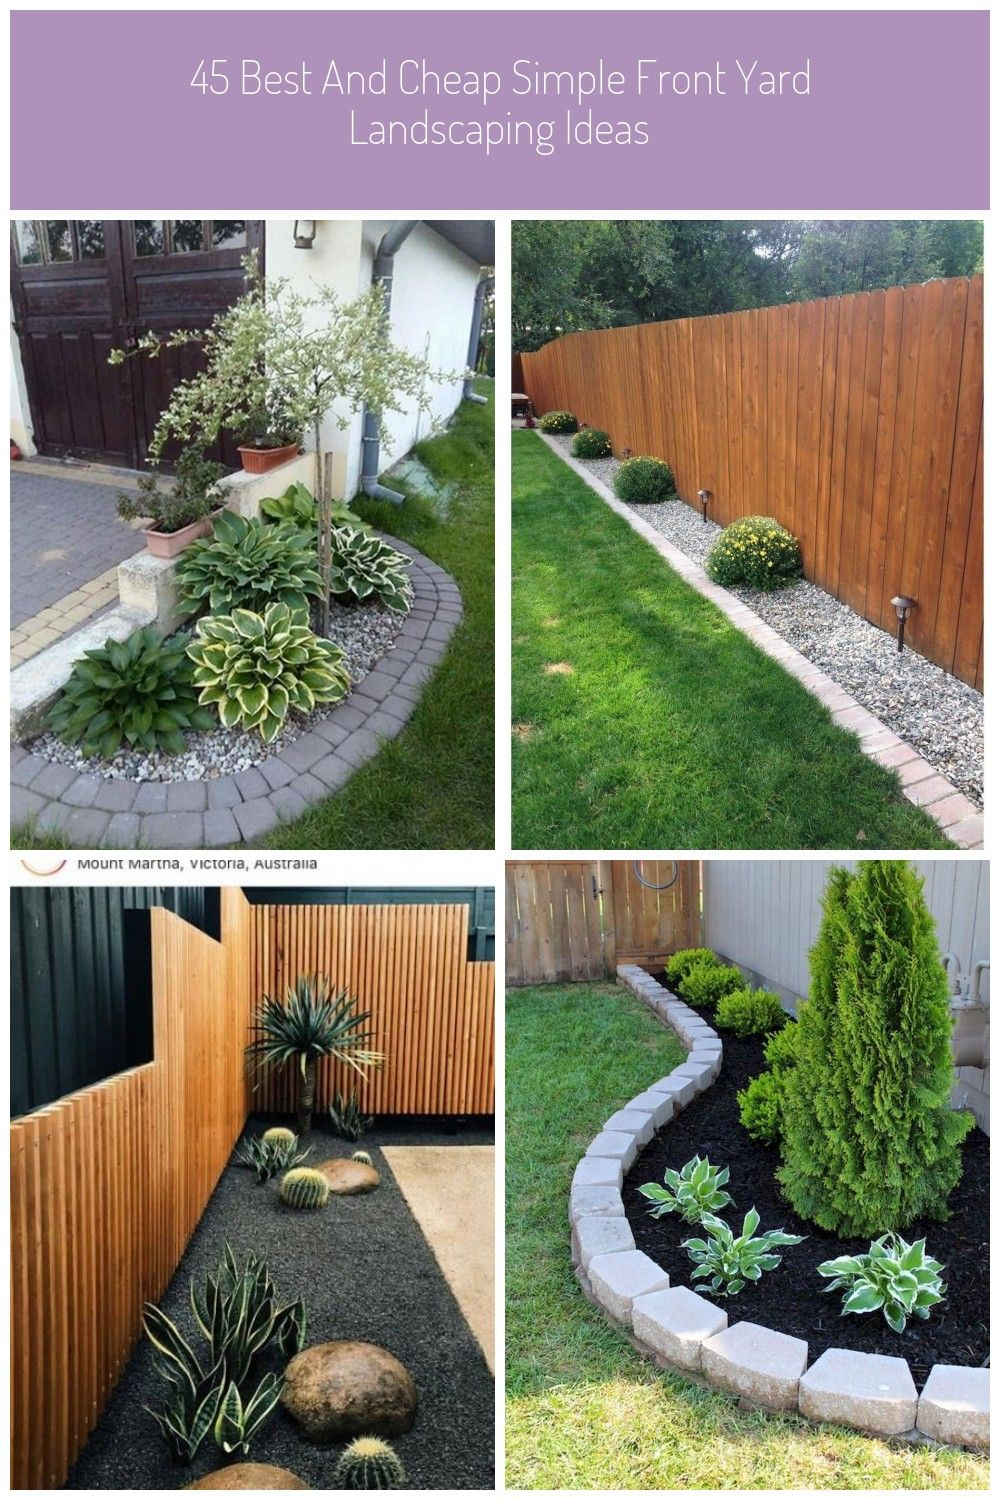 45 Best And Cheap Simple Front Yard Landscaping Ideas Cheap